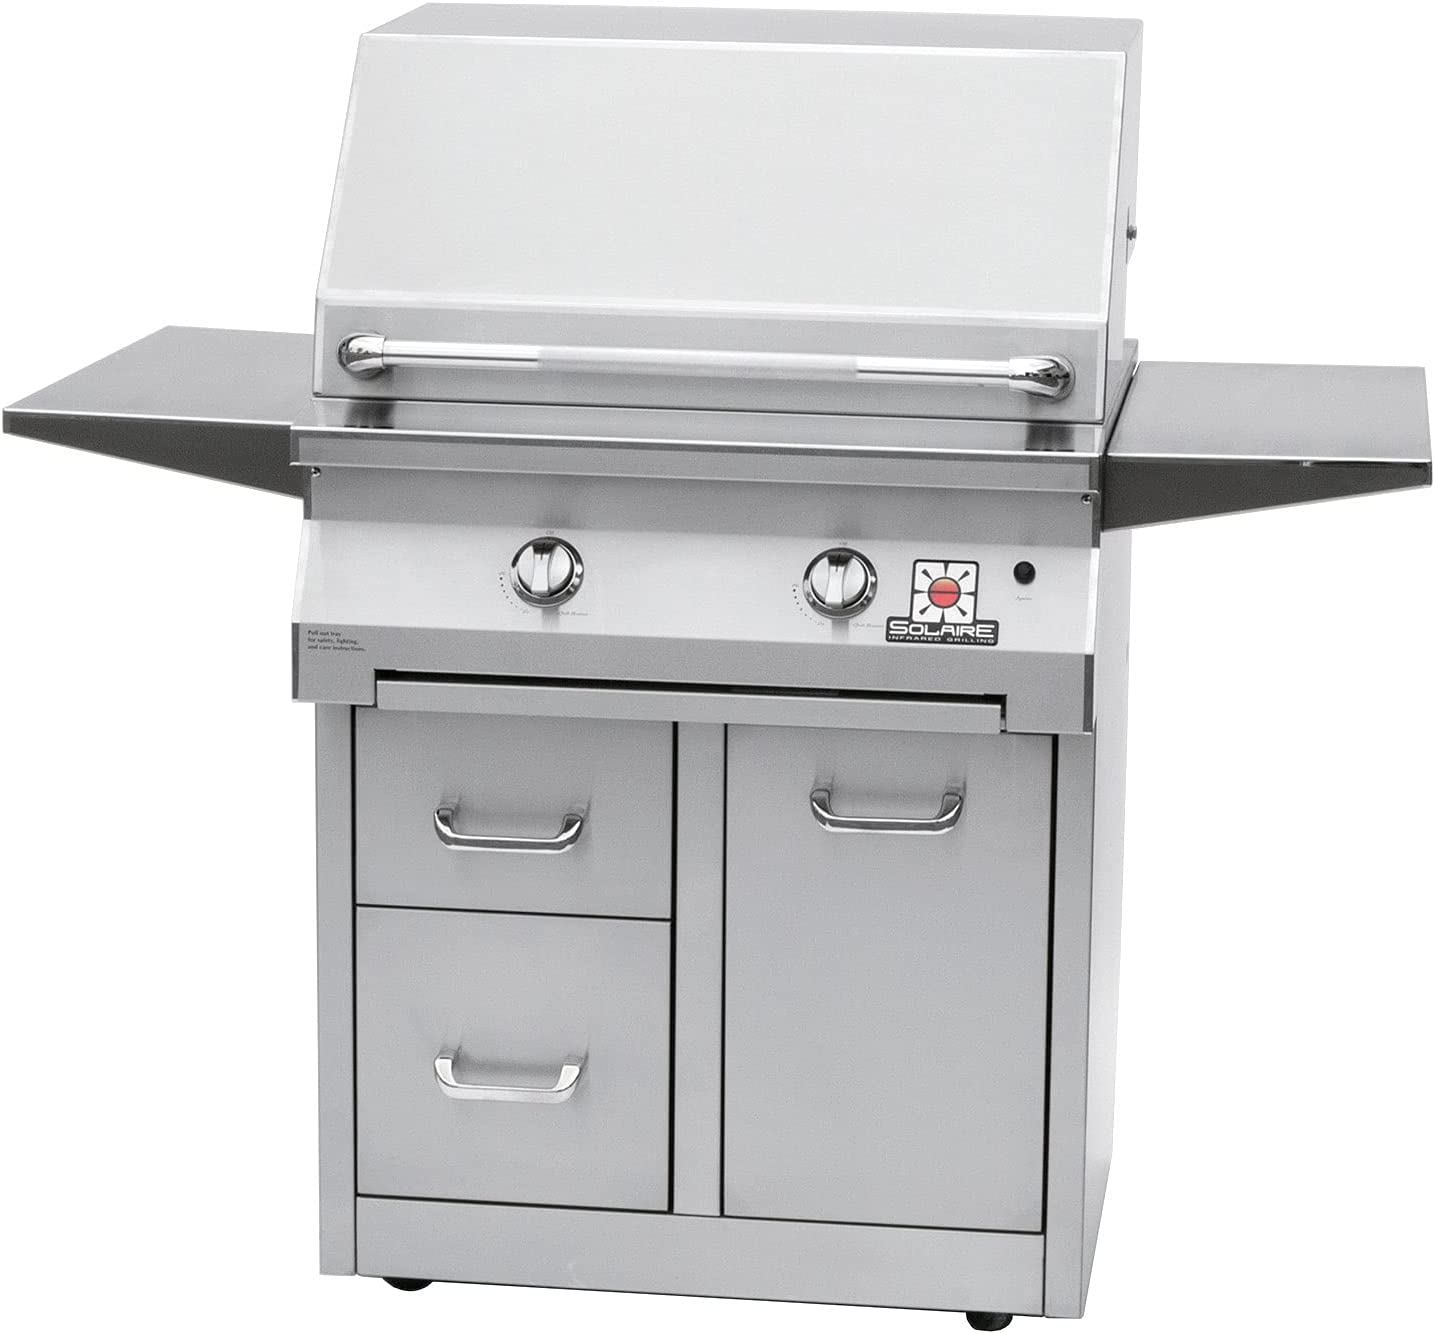 Solaire Convection Gifts Freestanding Premiu Grill Be super welcome SOL-IRBQ-30CX-NG